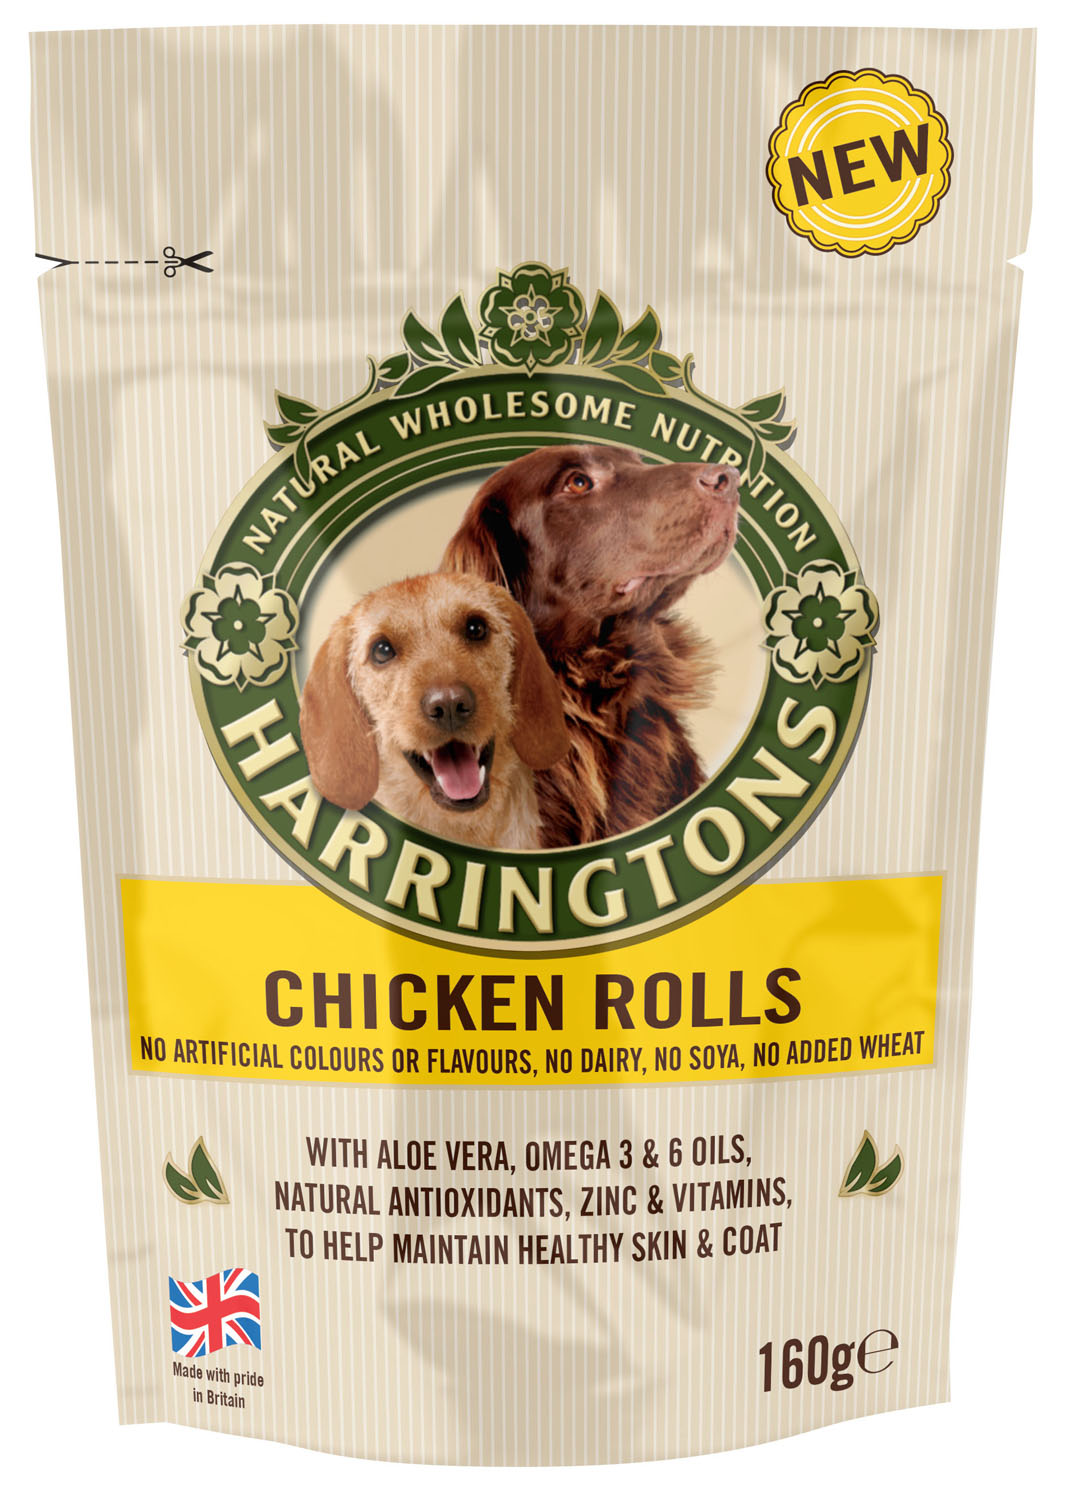 Harrington's Chicken Rolls